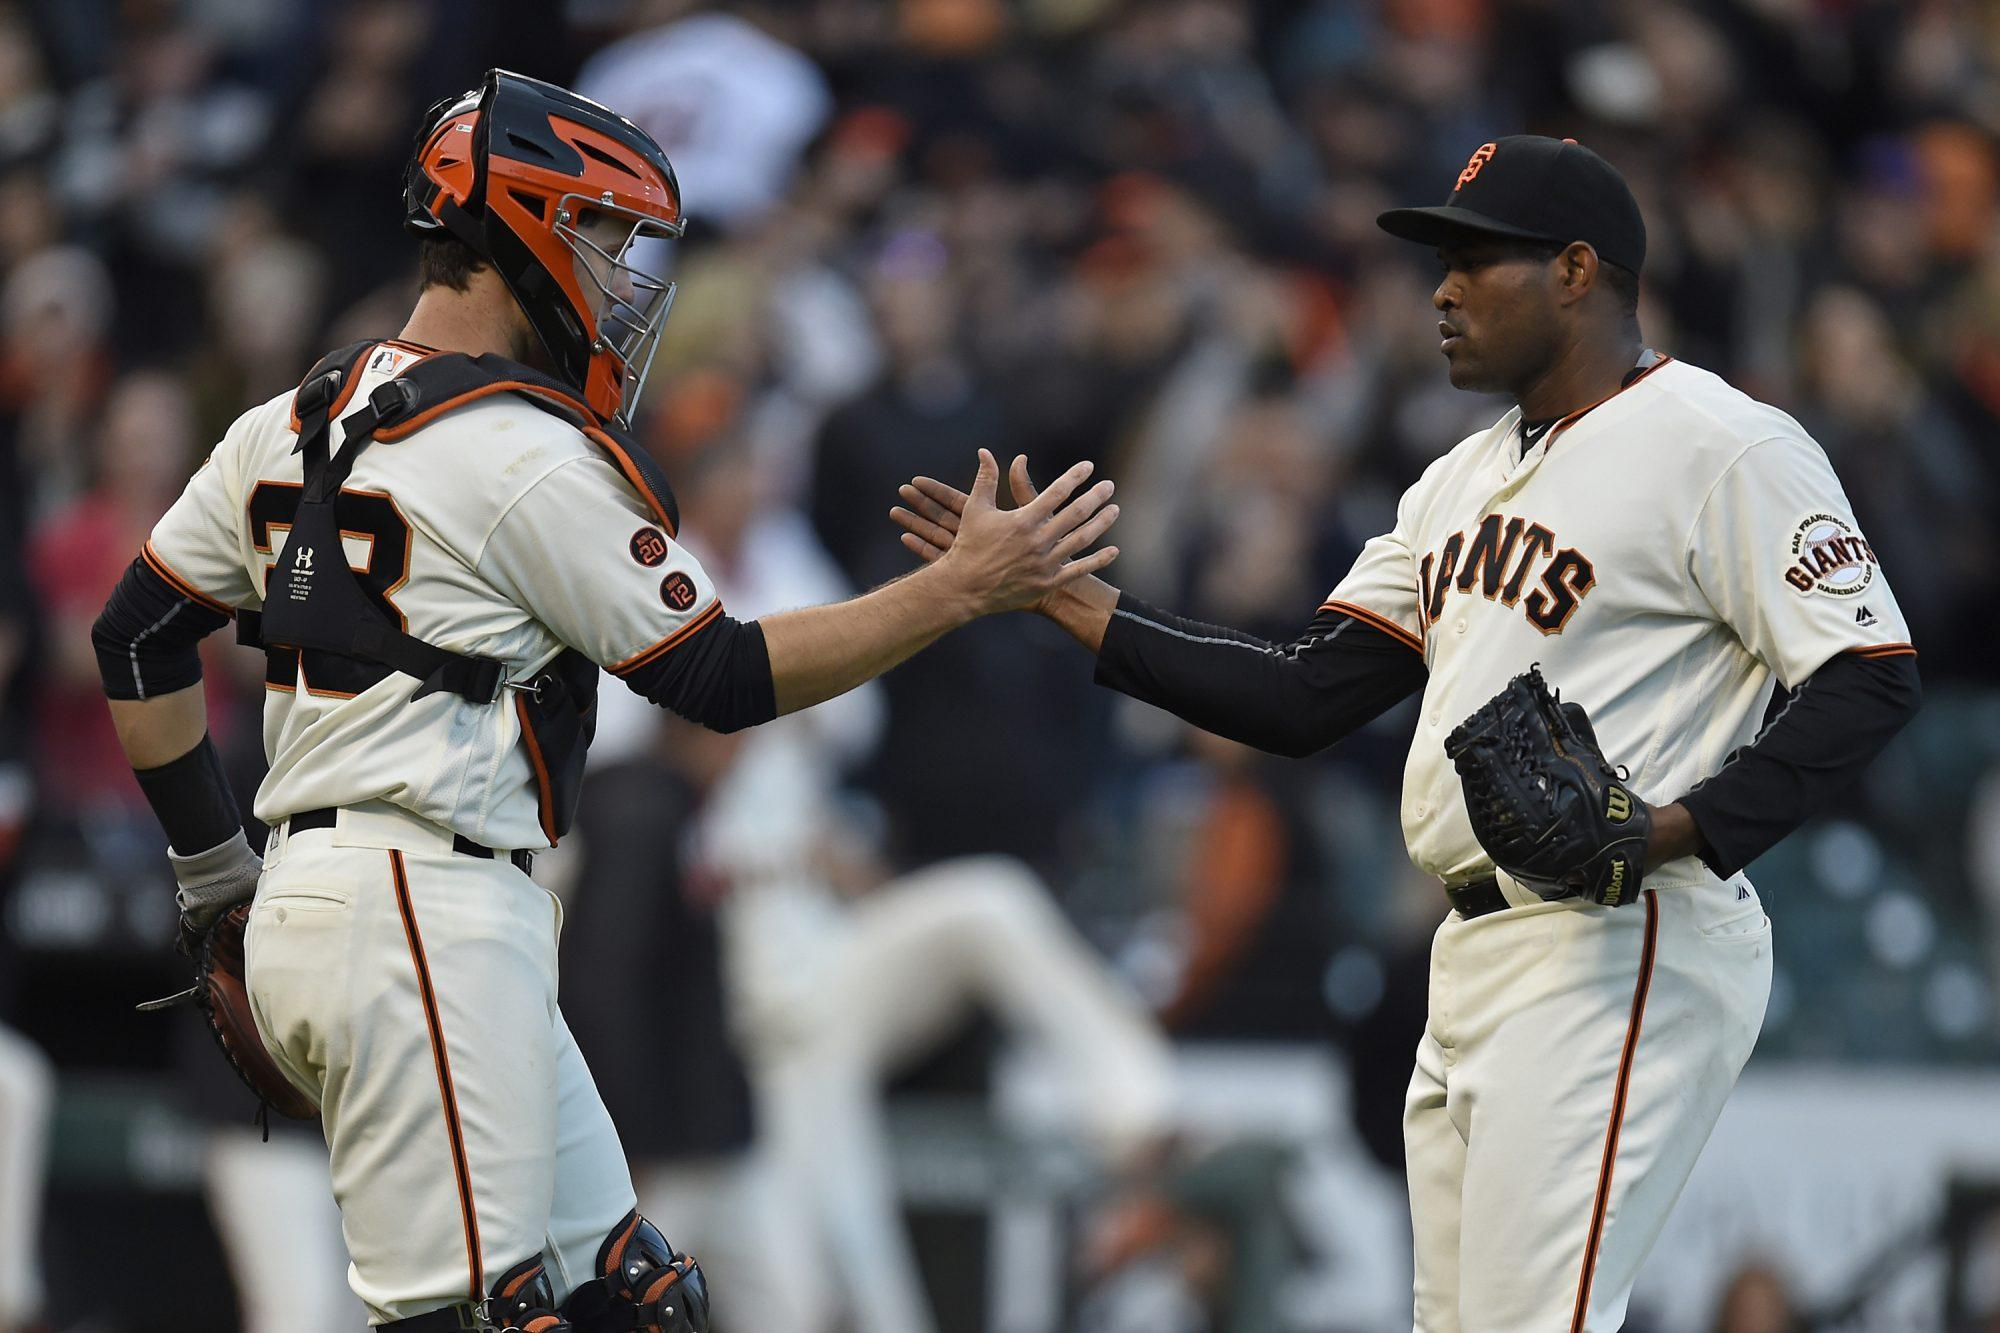 San Francisco Giants' Buster Posey (28) congratulates San Francisco Giants pitcher Santiago Casilla (46) after striking out Chicago Cubs' Addison Russell (27) to end the game on Sunday, May 22, 2016, at AT&T Park in San Francisco. (Jose Carlos Fajardo/Bay Area News Group/TNS)